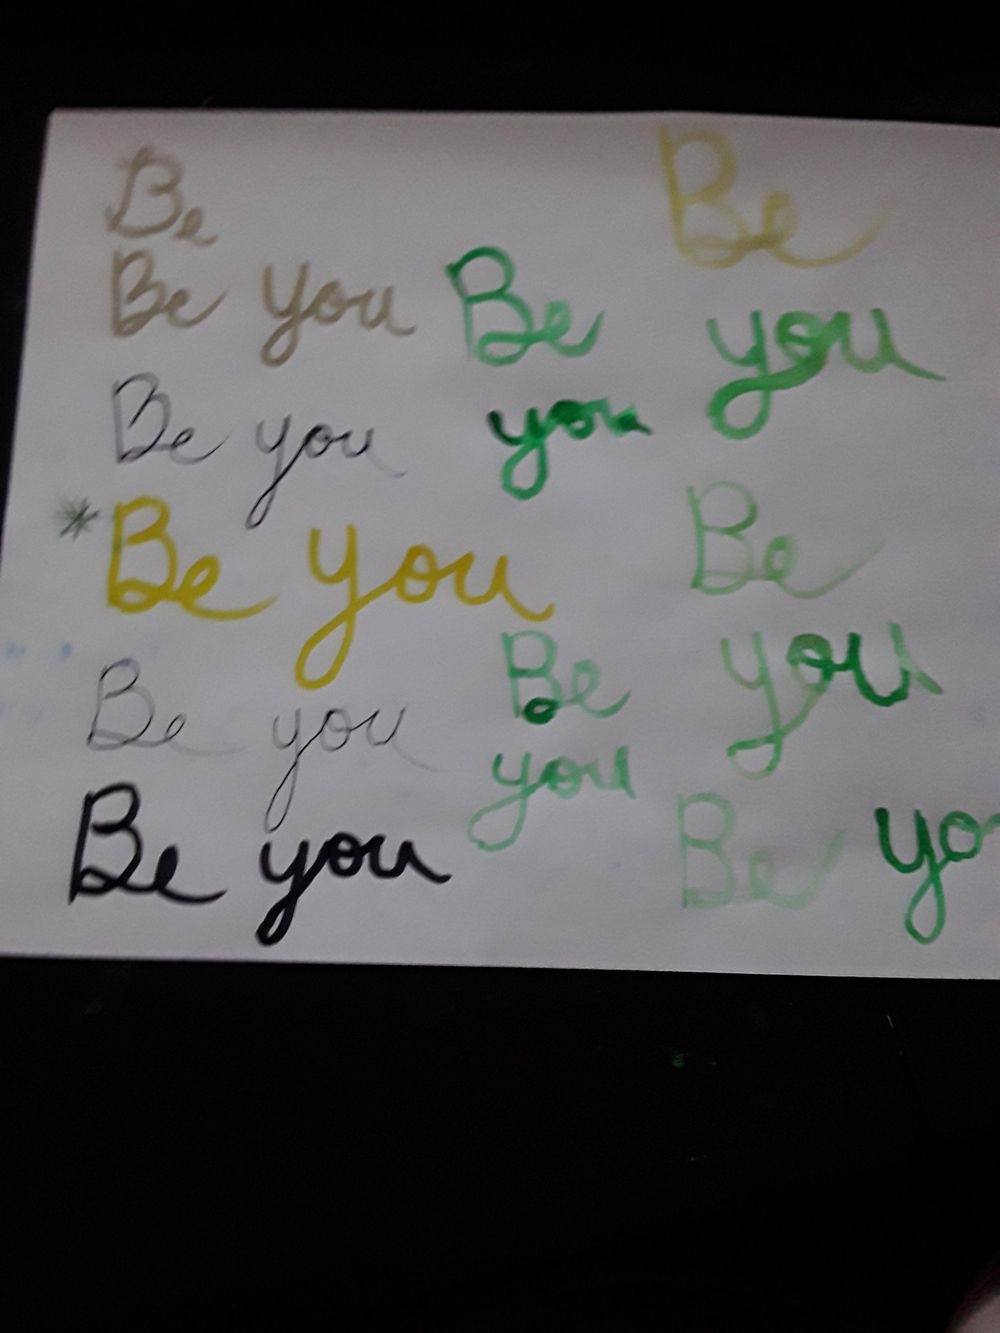 Be you - image 4 - student project